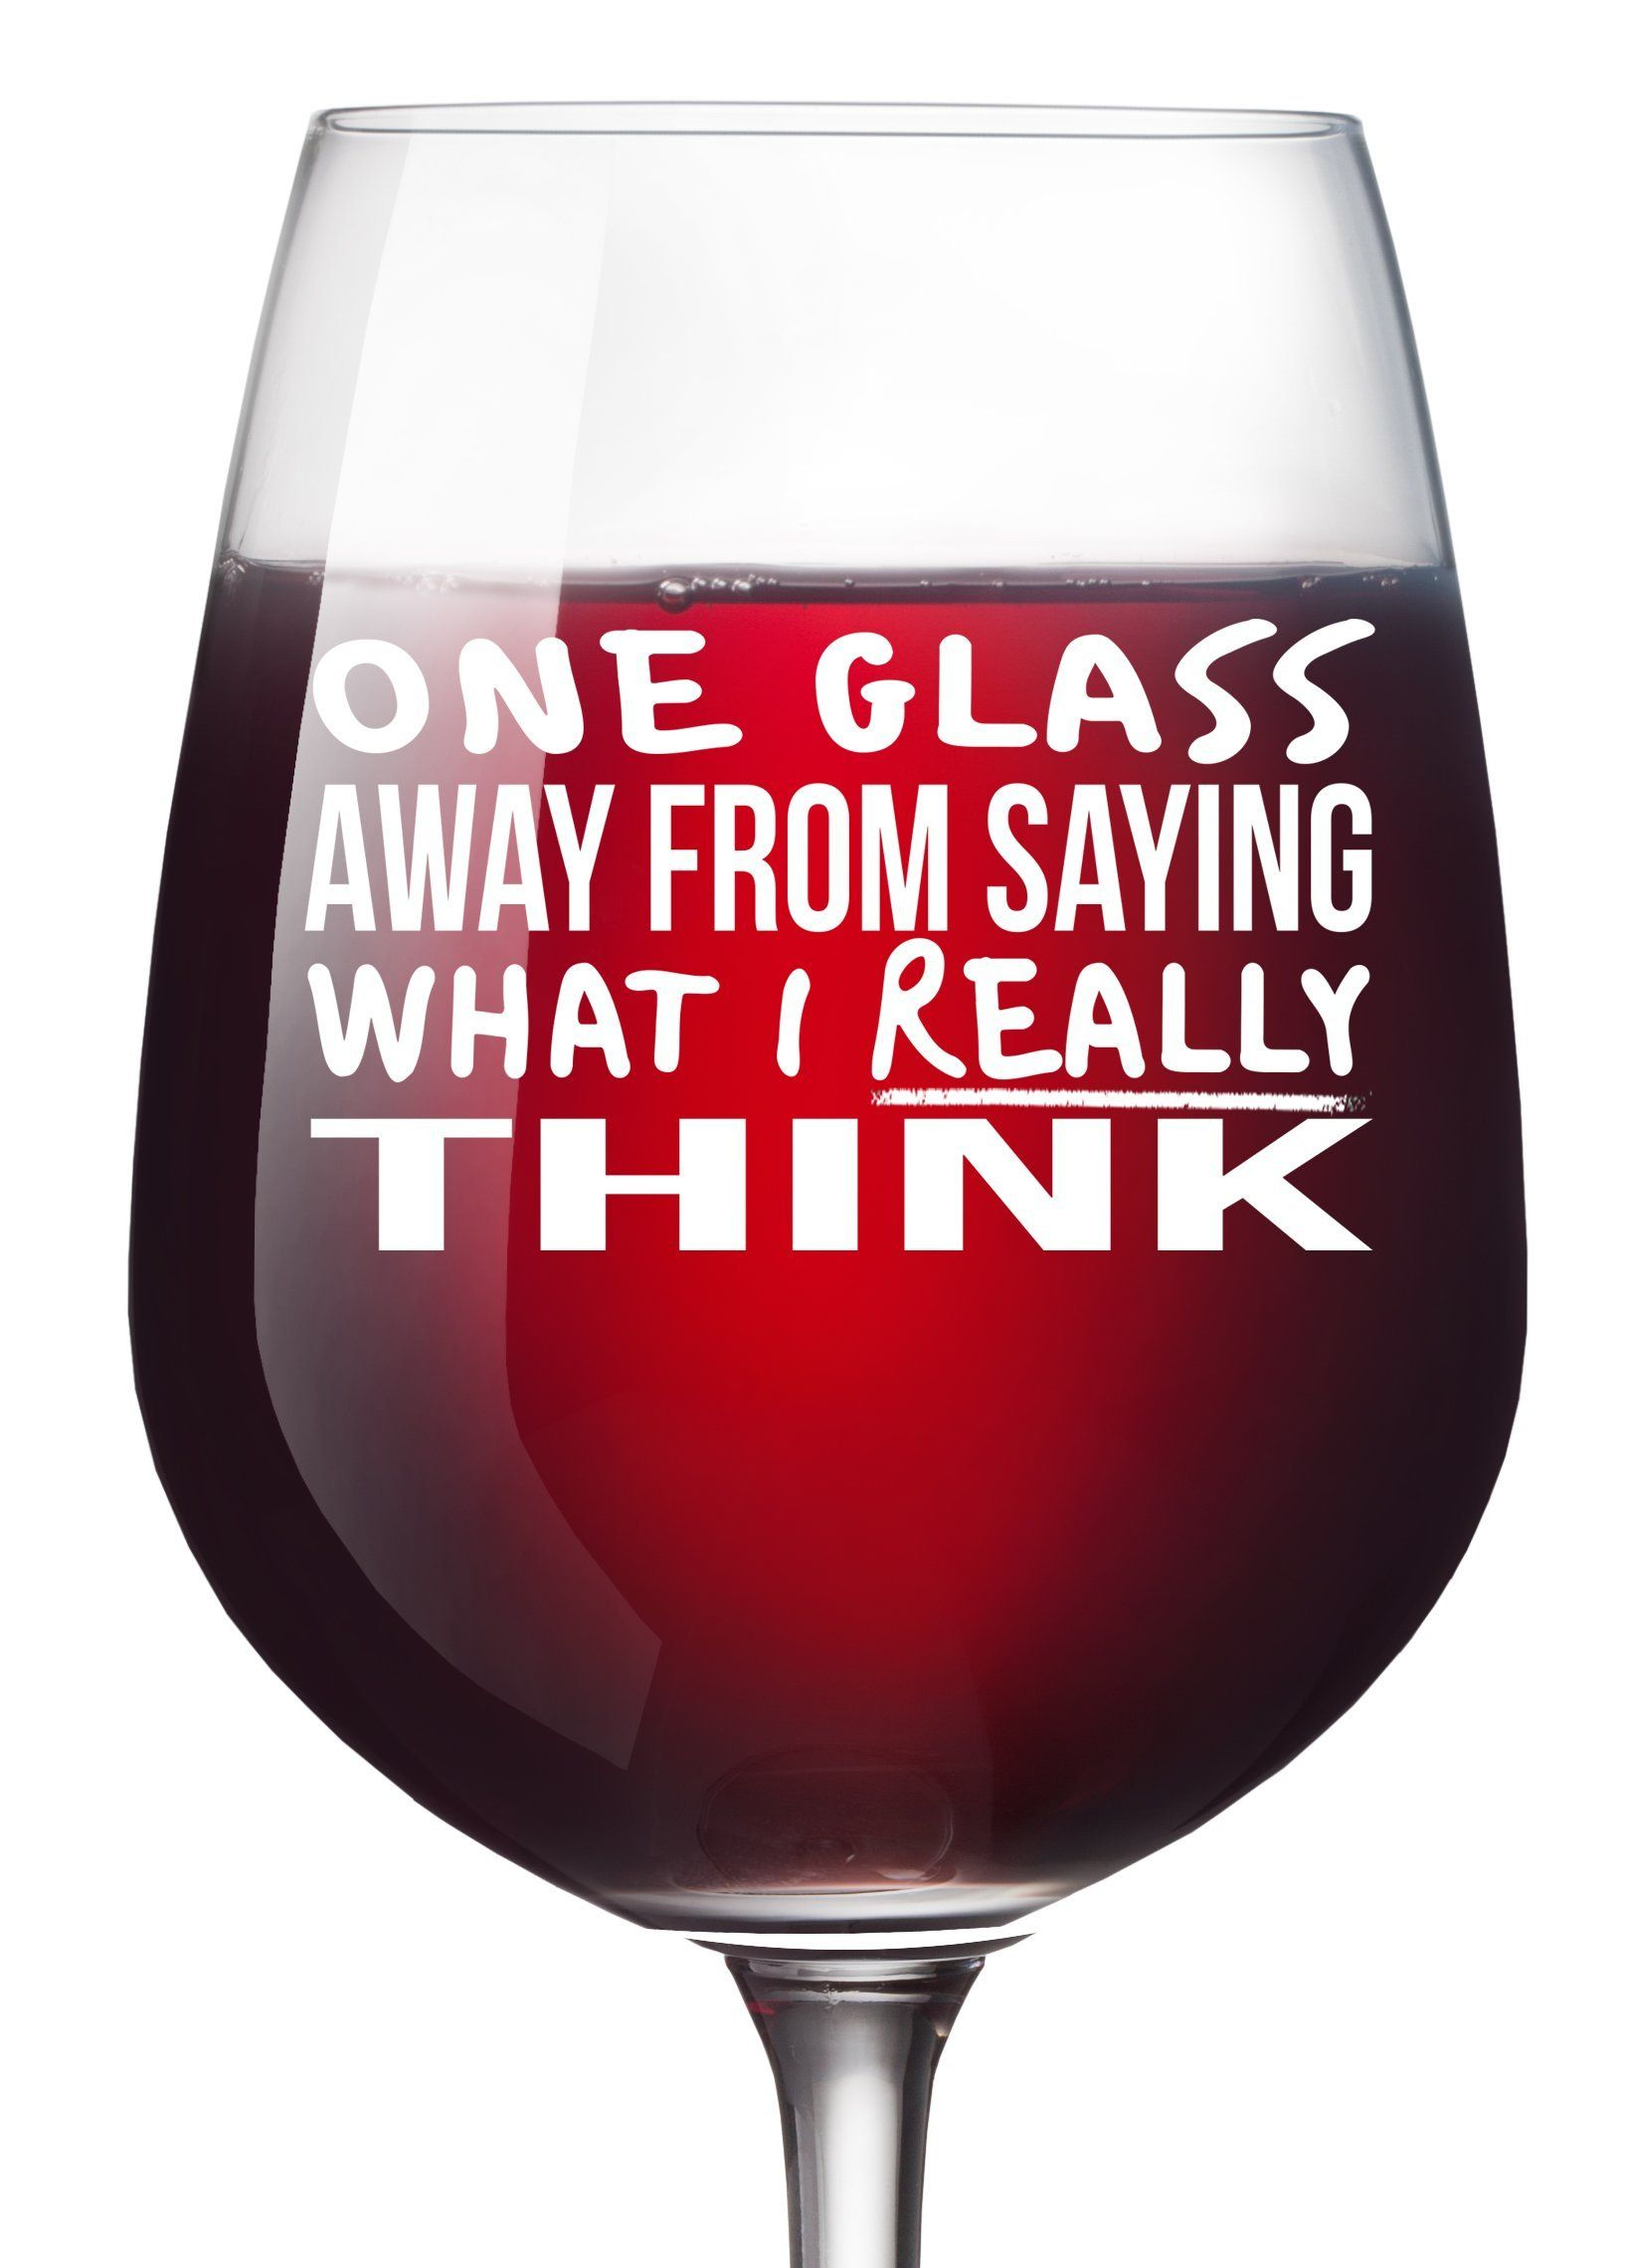 One Glass Away Funny Wine Glass Unique Wine Gifts Women Birthday Wine Gifts For Men Wife Girlfriend Sister Boss Funny Wine Glass Wine Humor Wine Glass Sayings